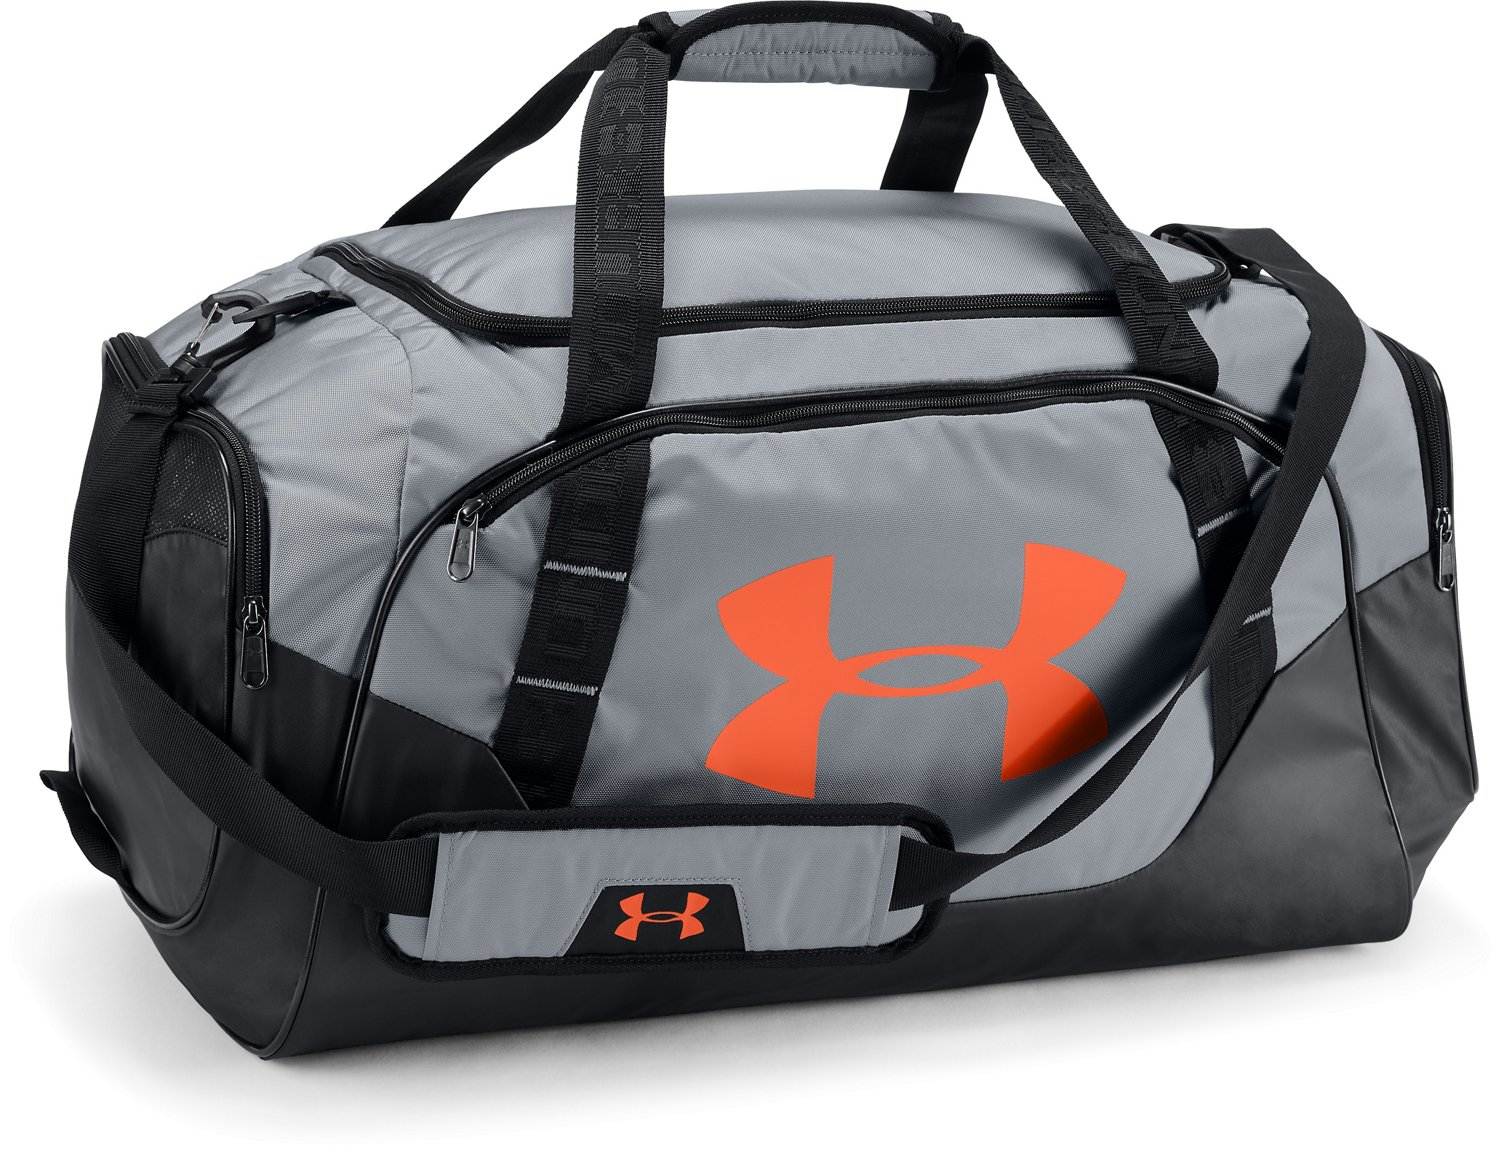 88470964c2f Display product reviews for Under Armour Undeniable II Duffel Bag